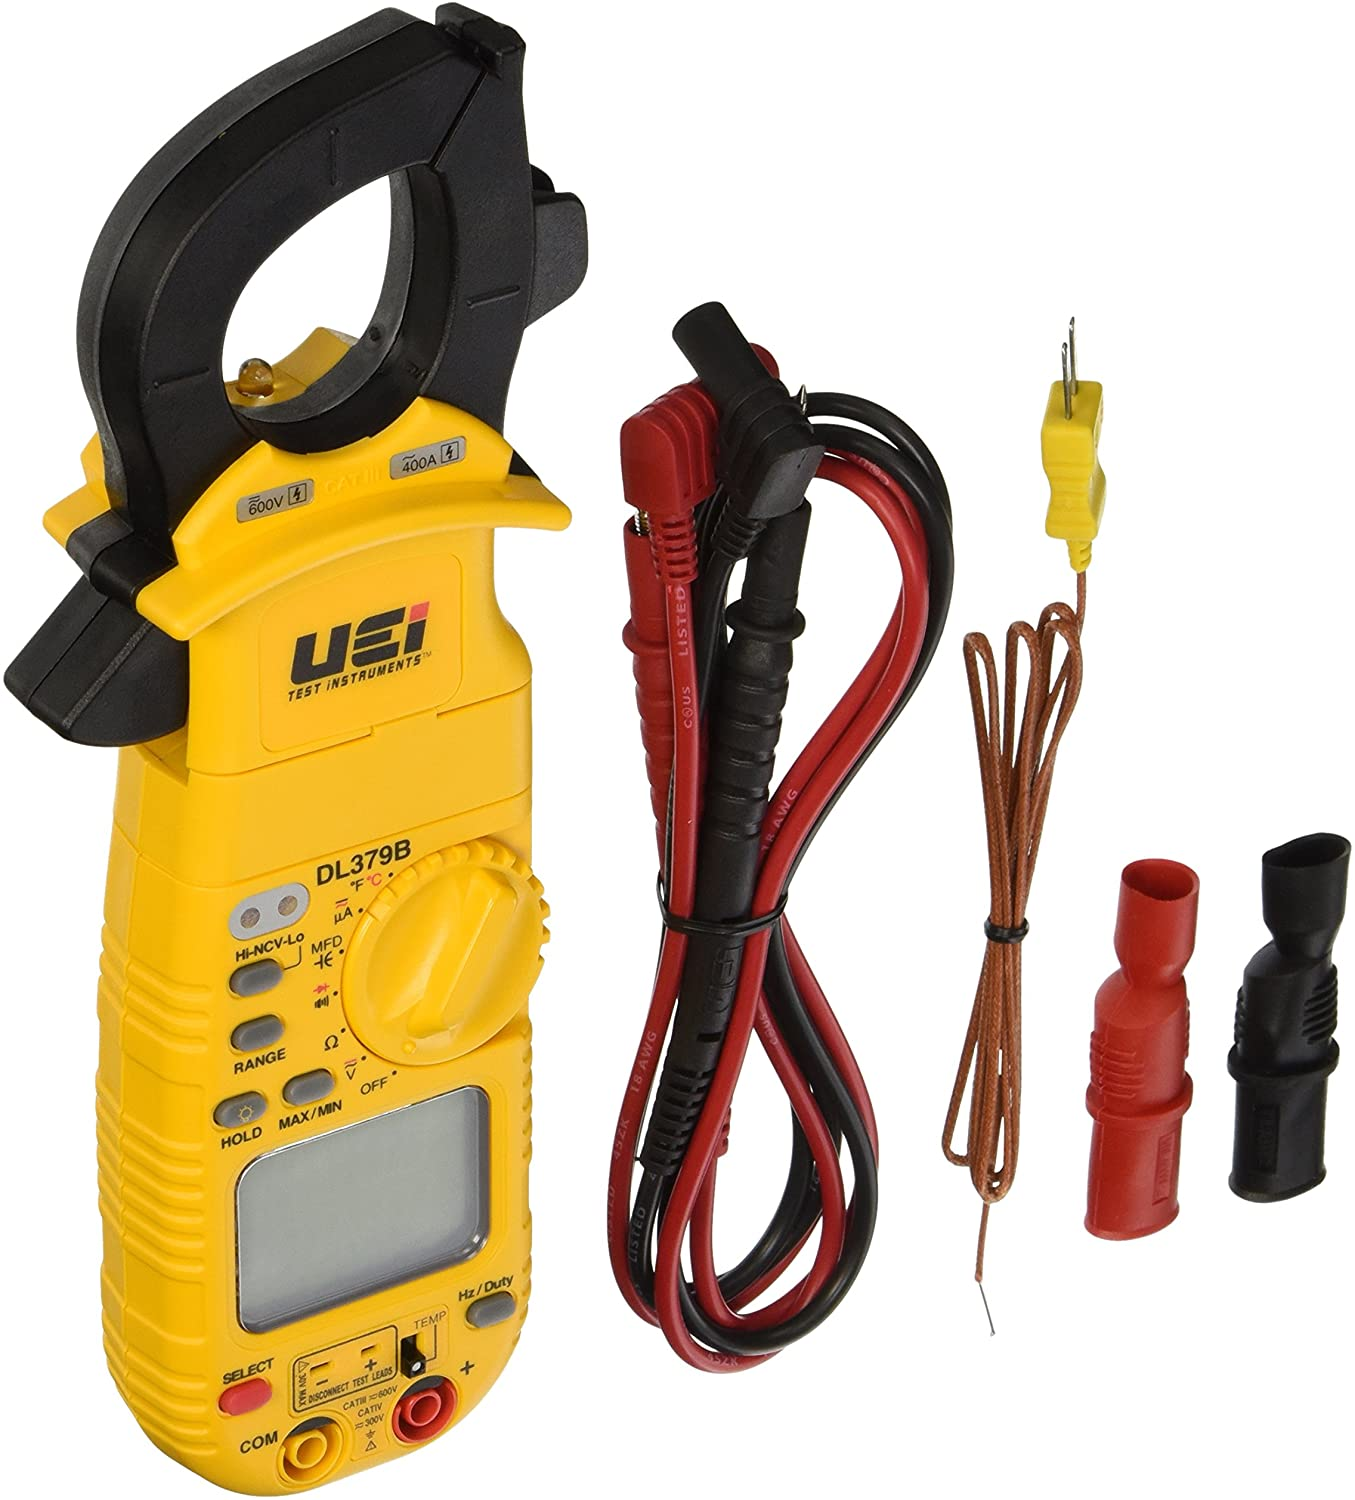 UEi Test Instruments DL379B Digital HVAC Clamp Meter